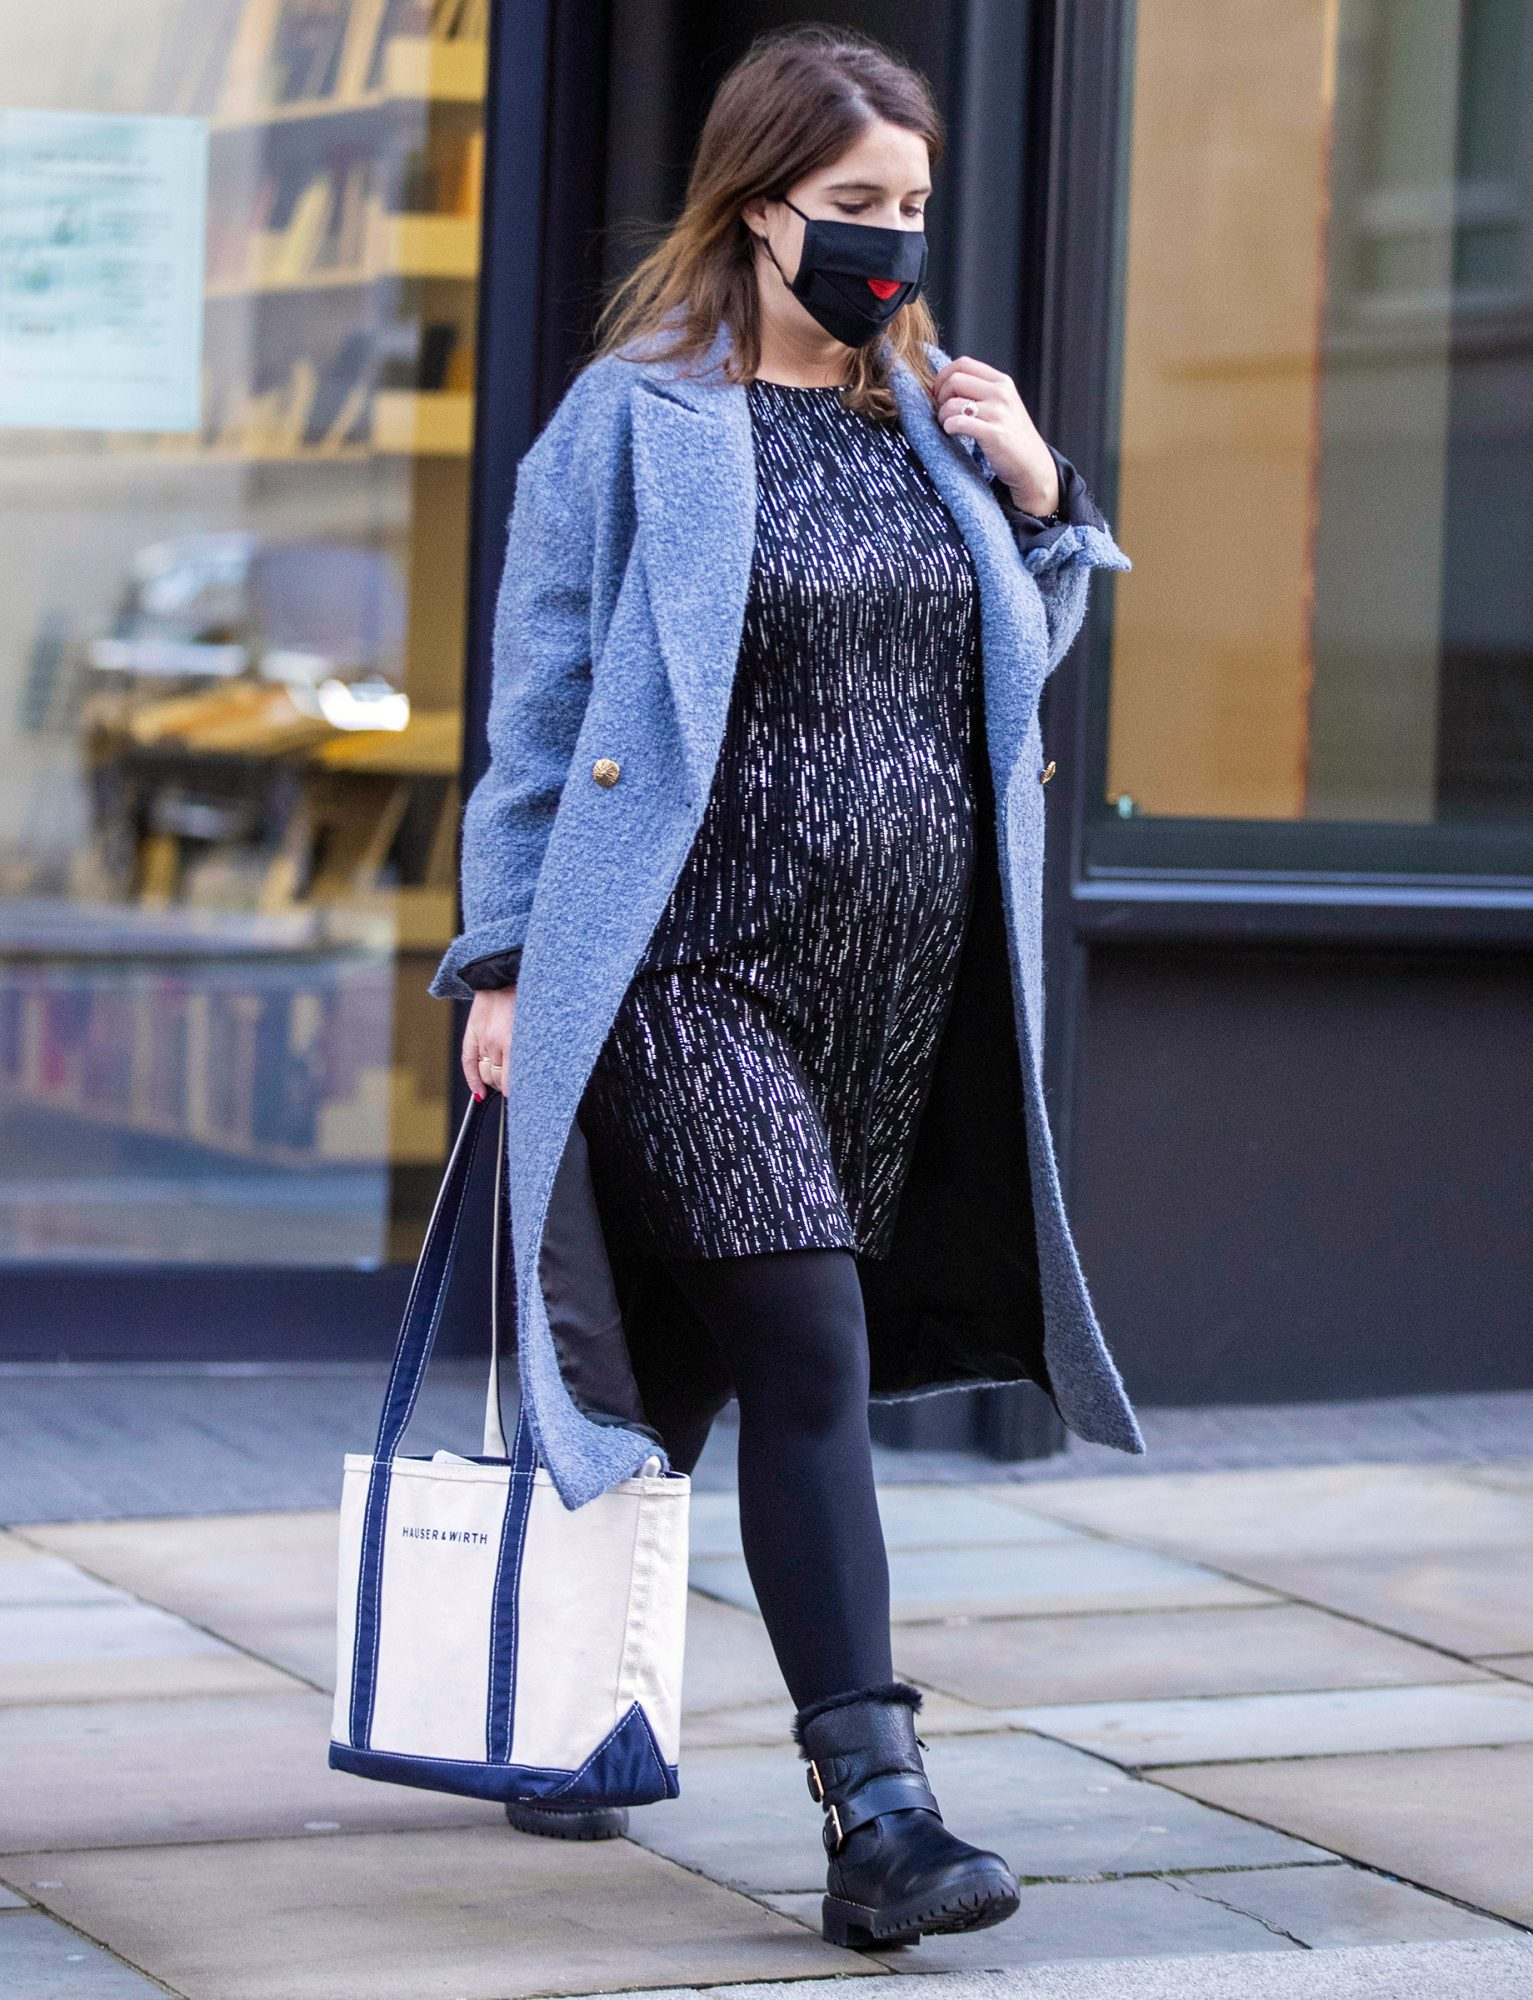 Princess Eugenie Shows Off Her Growing Baby Bump as She is Spotted Visiting an Art Gallery in London.